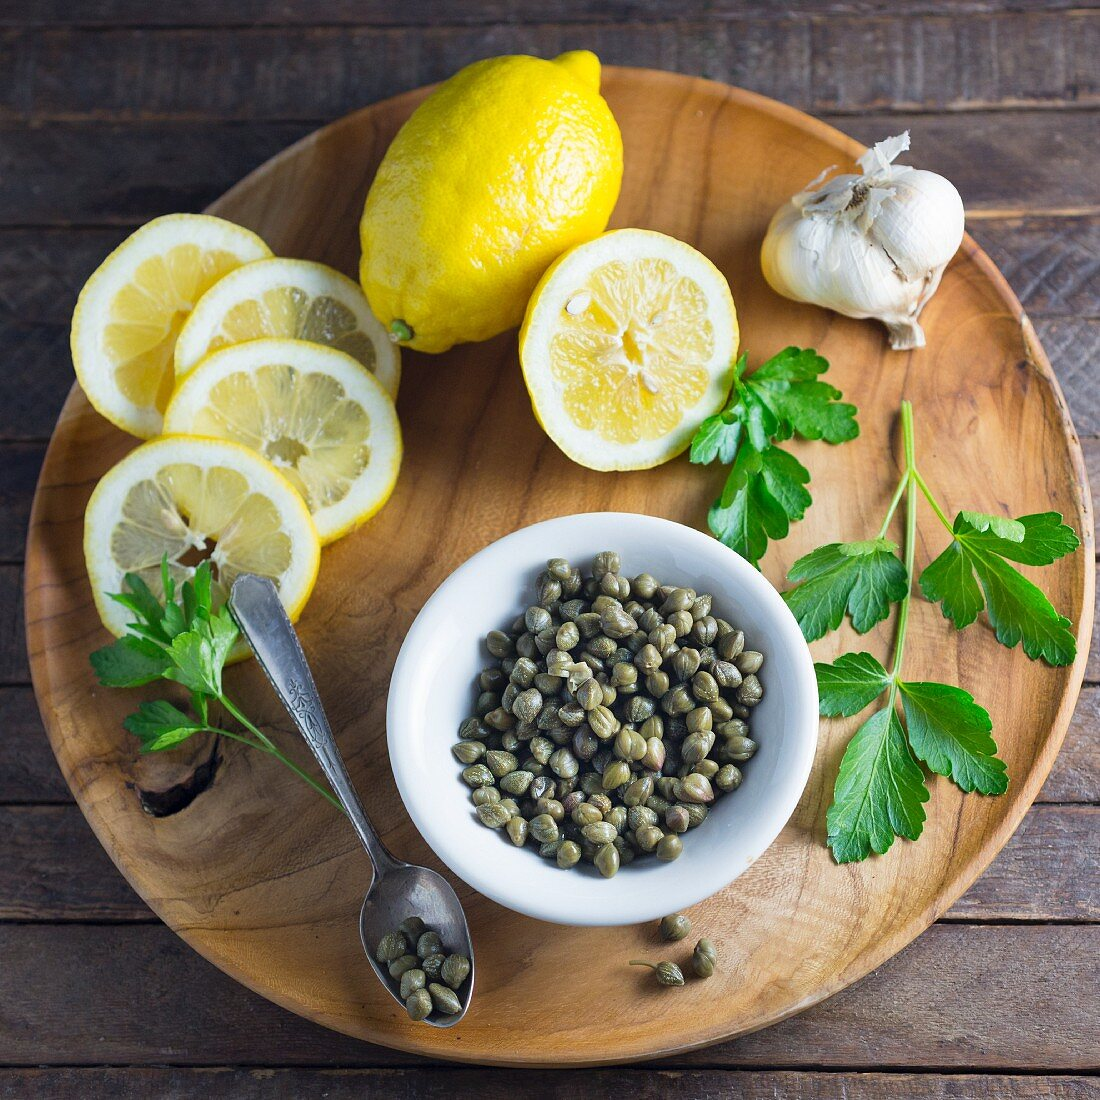 Lemons, capers, garlic and parsley on a wooden plate